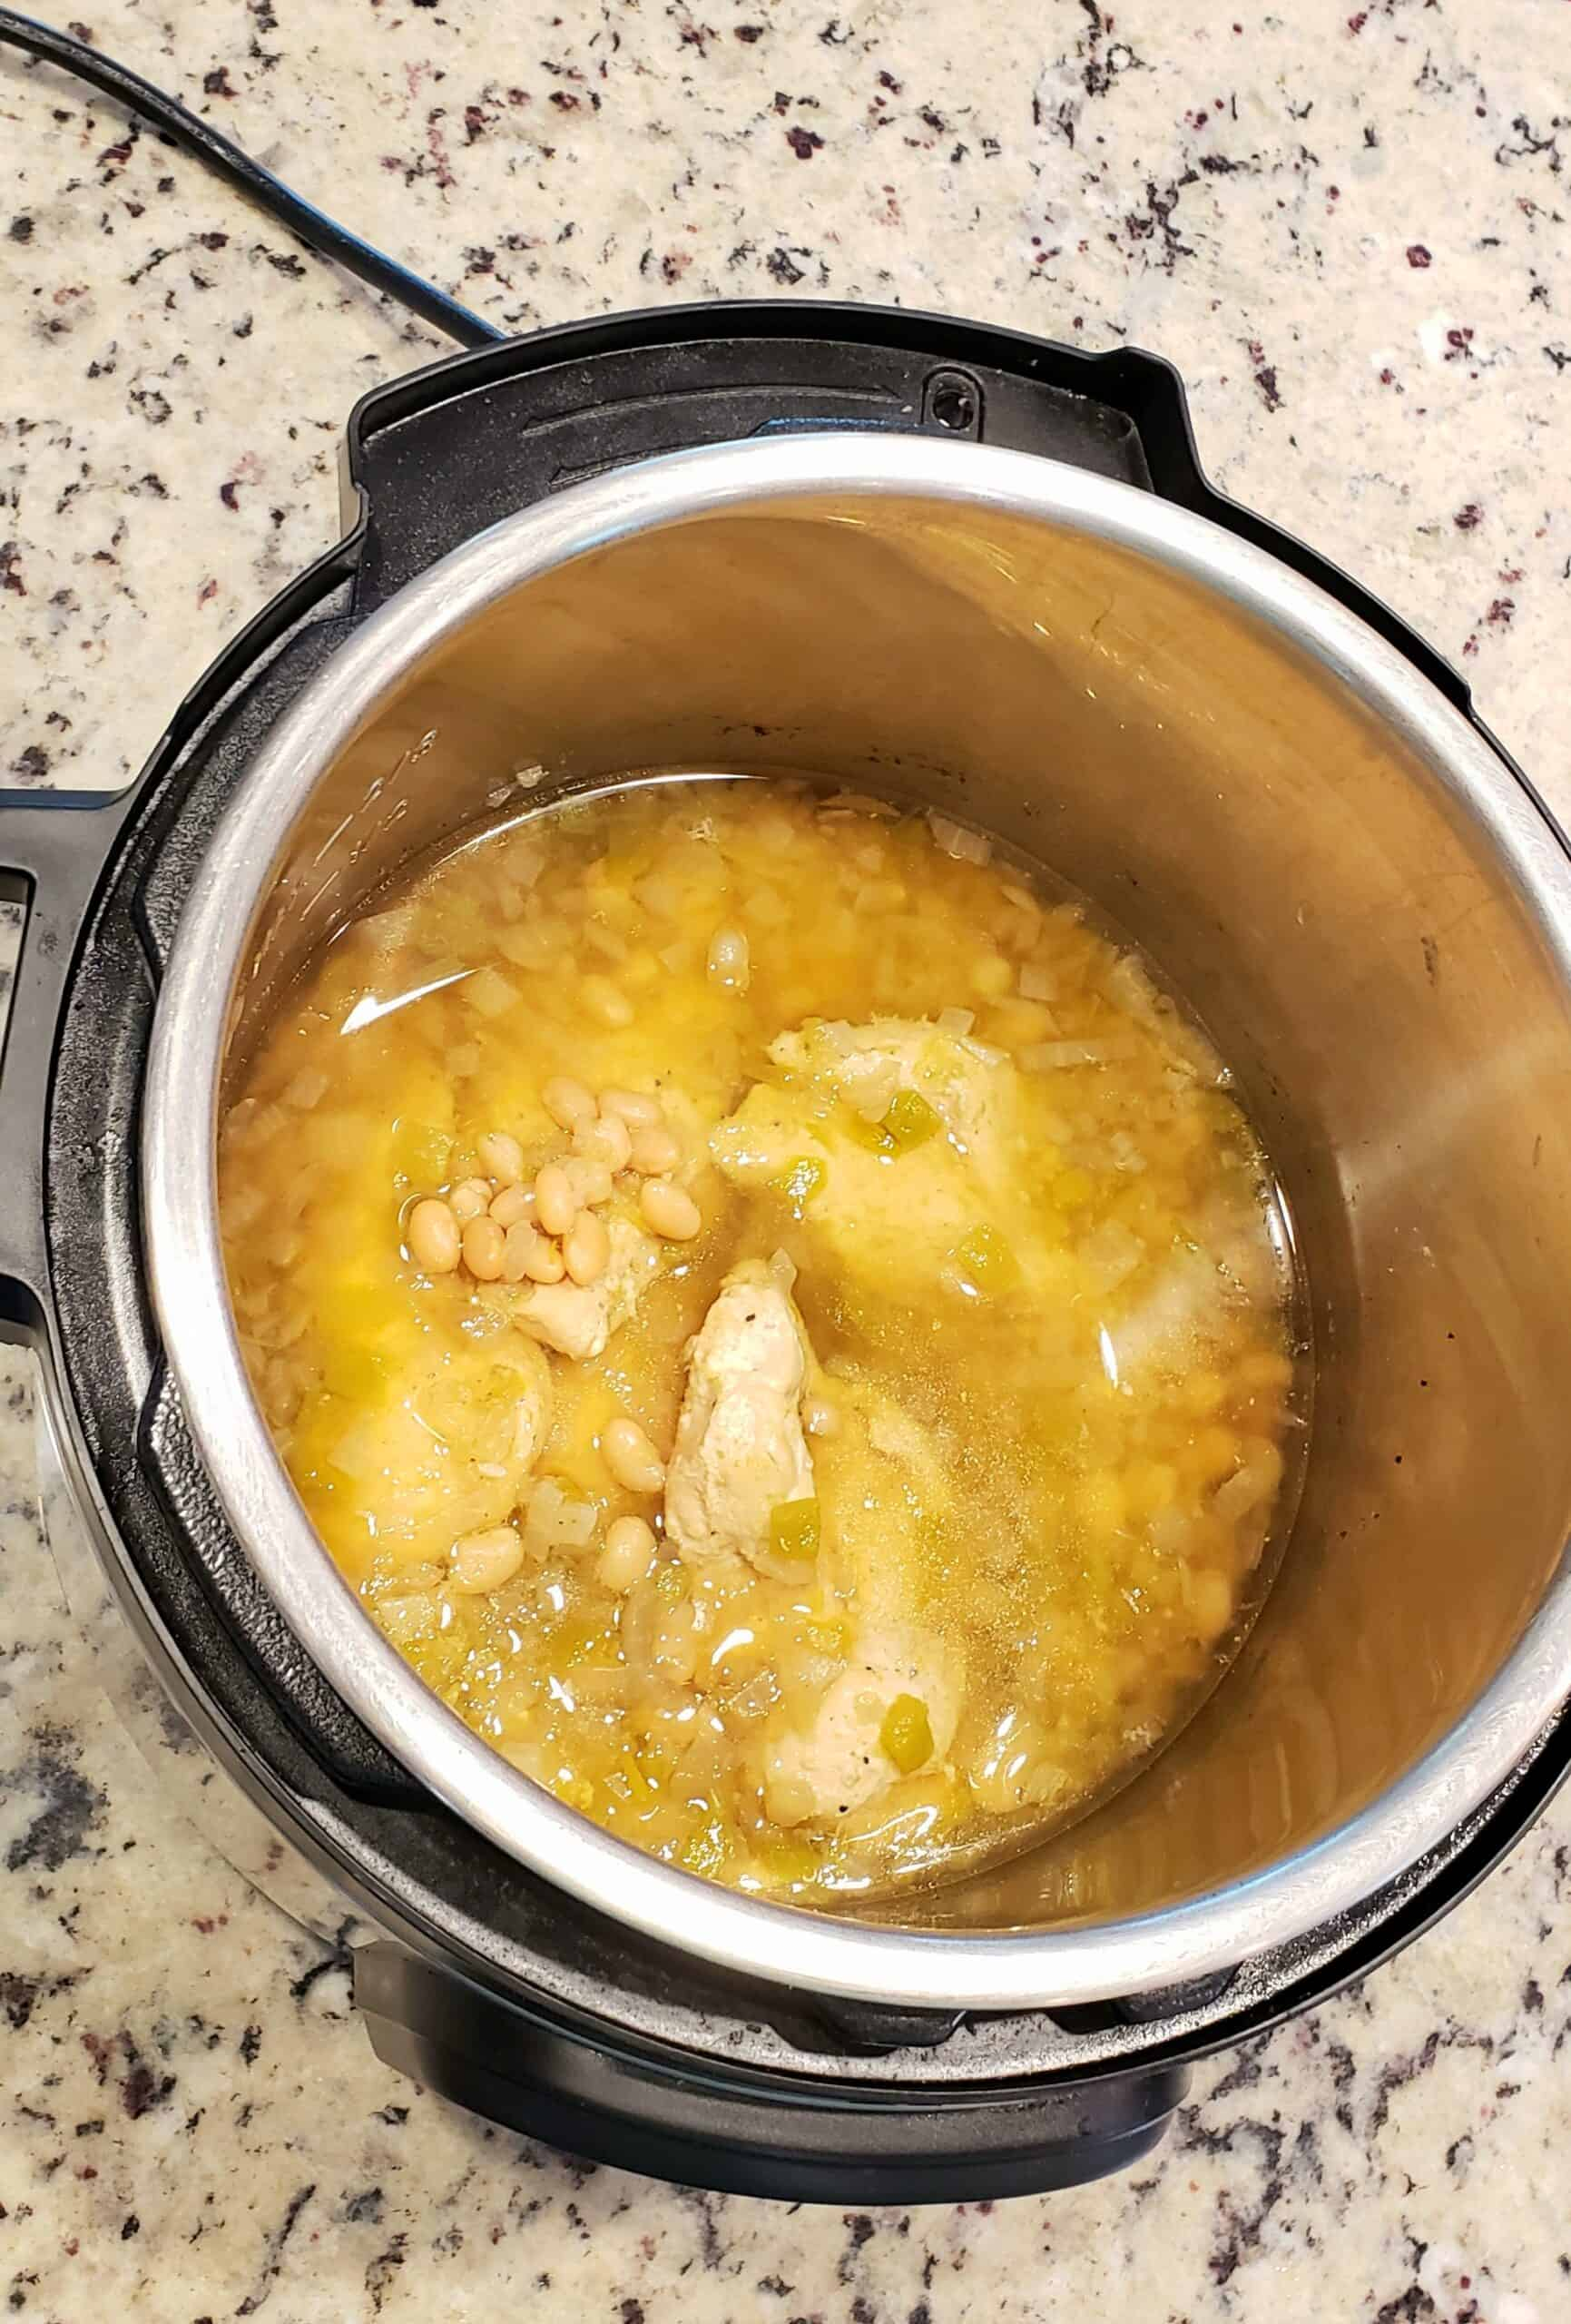 Cooked chicken and bean mixture in the Instant Pot for White Bean and Chicken Chili